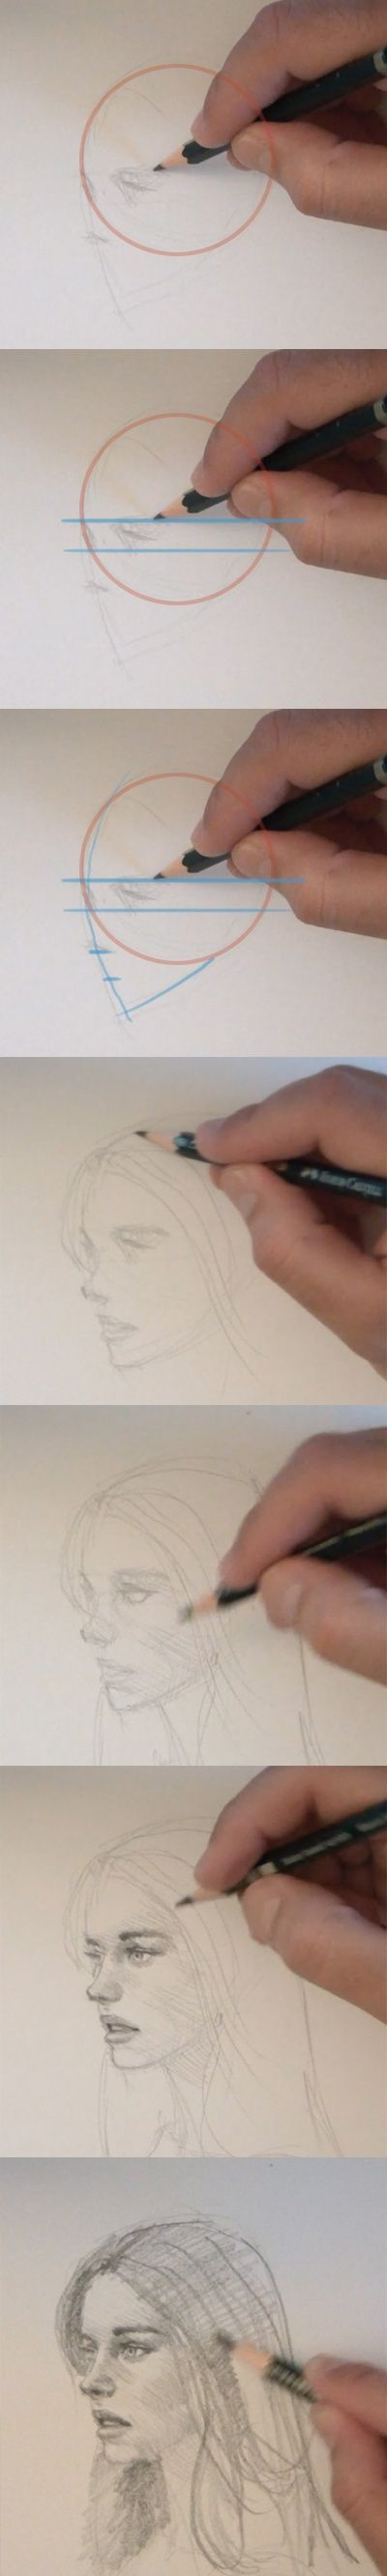 face head fast process grid proportions